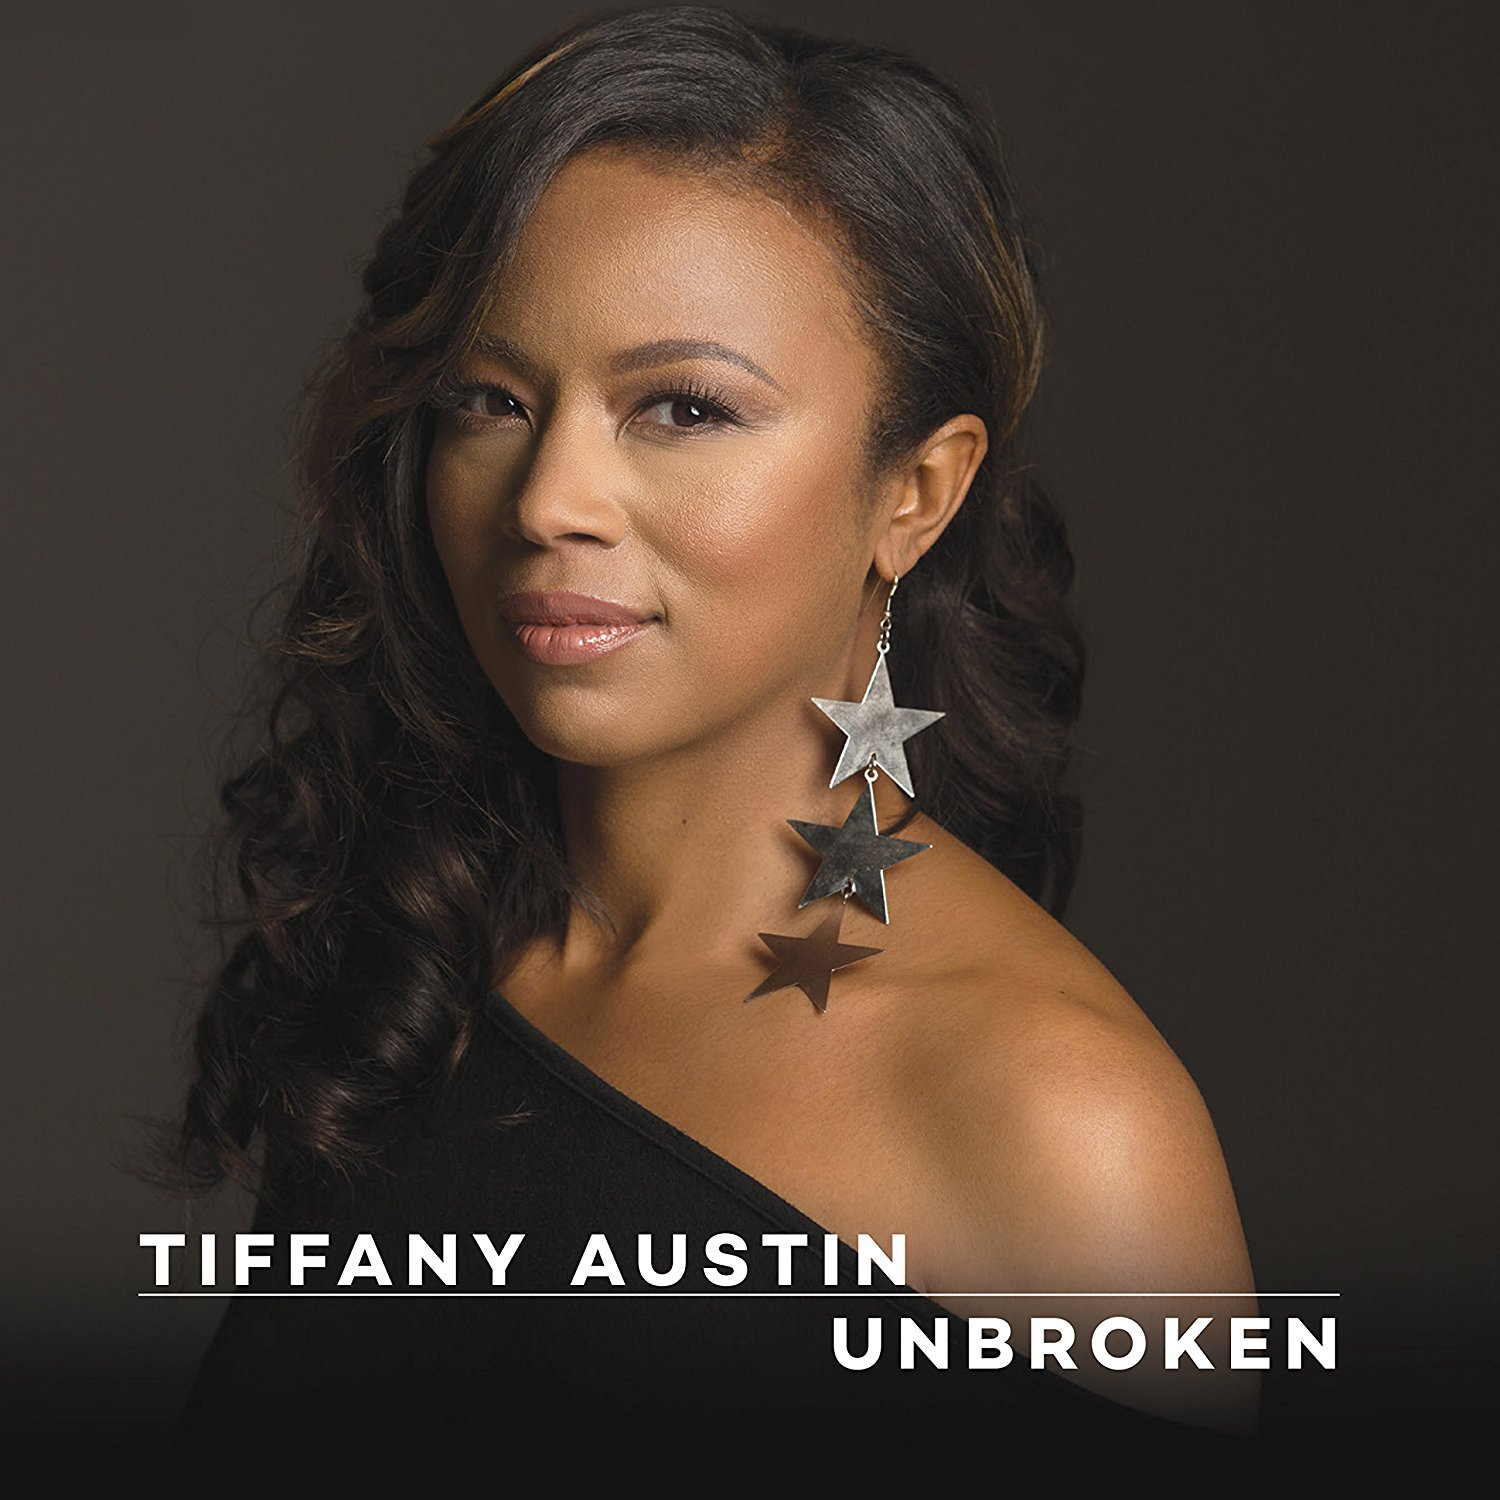 TIFFANY AUSTIN - Unbroken cover